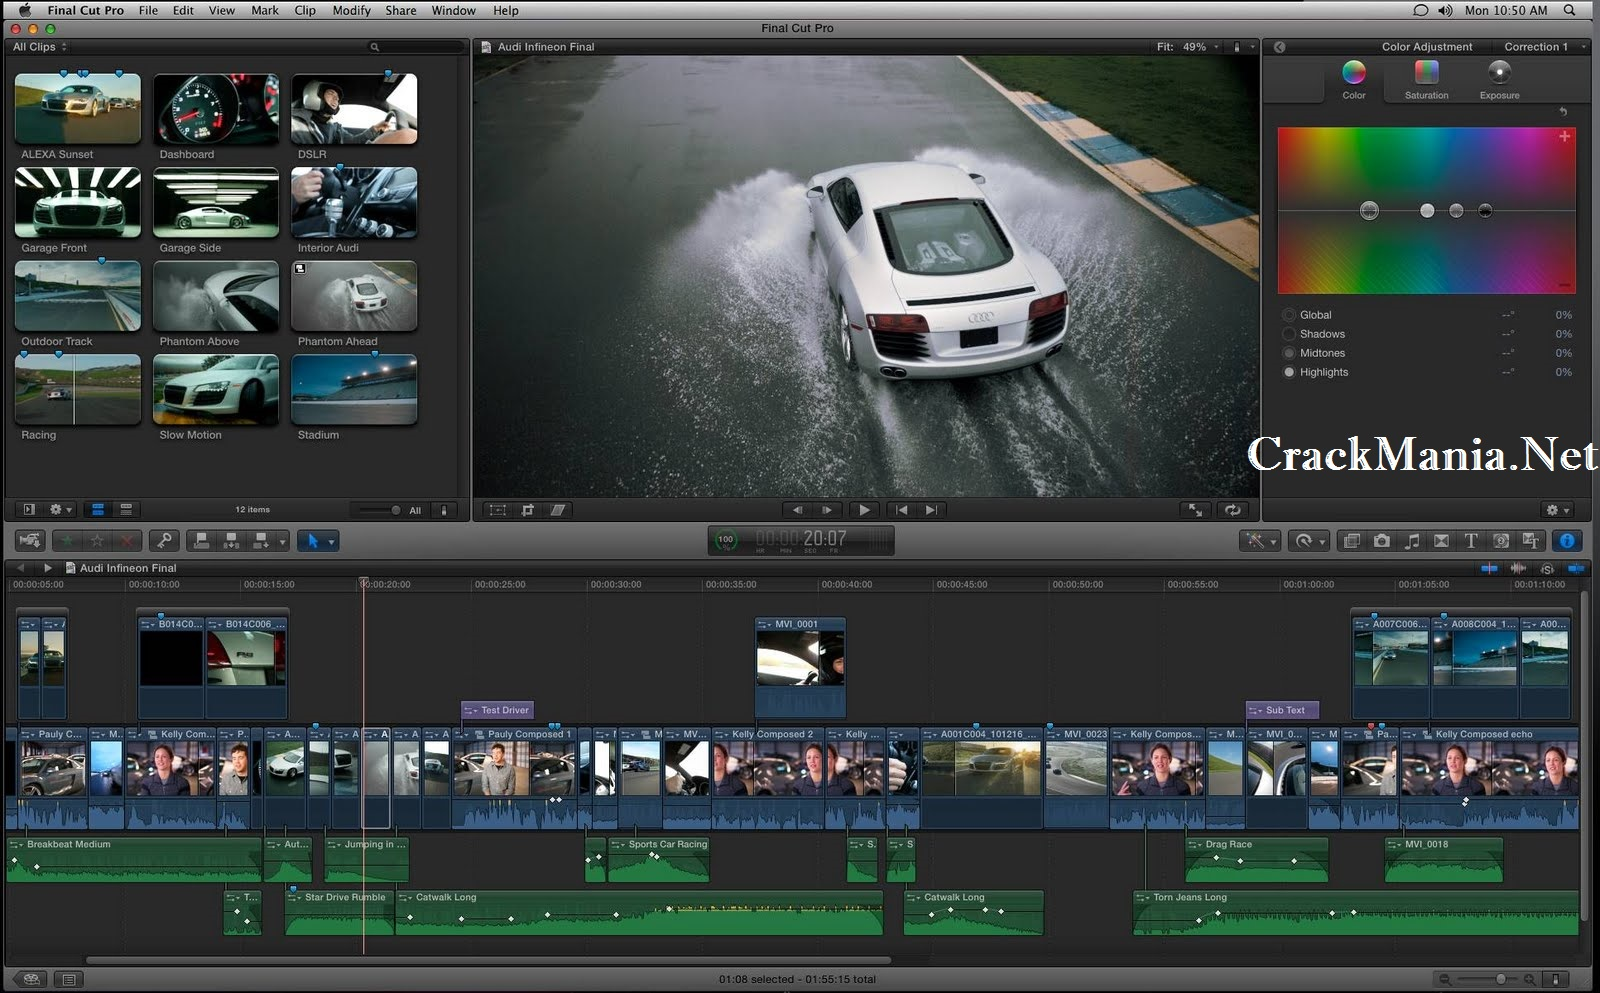 final cut pro free download for windows 10 crack